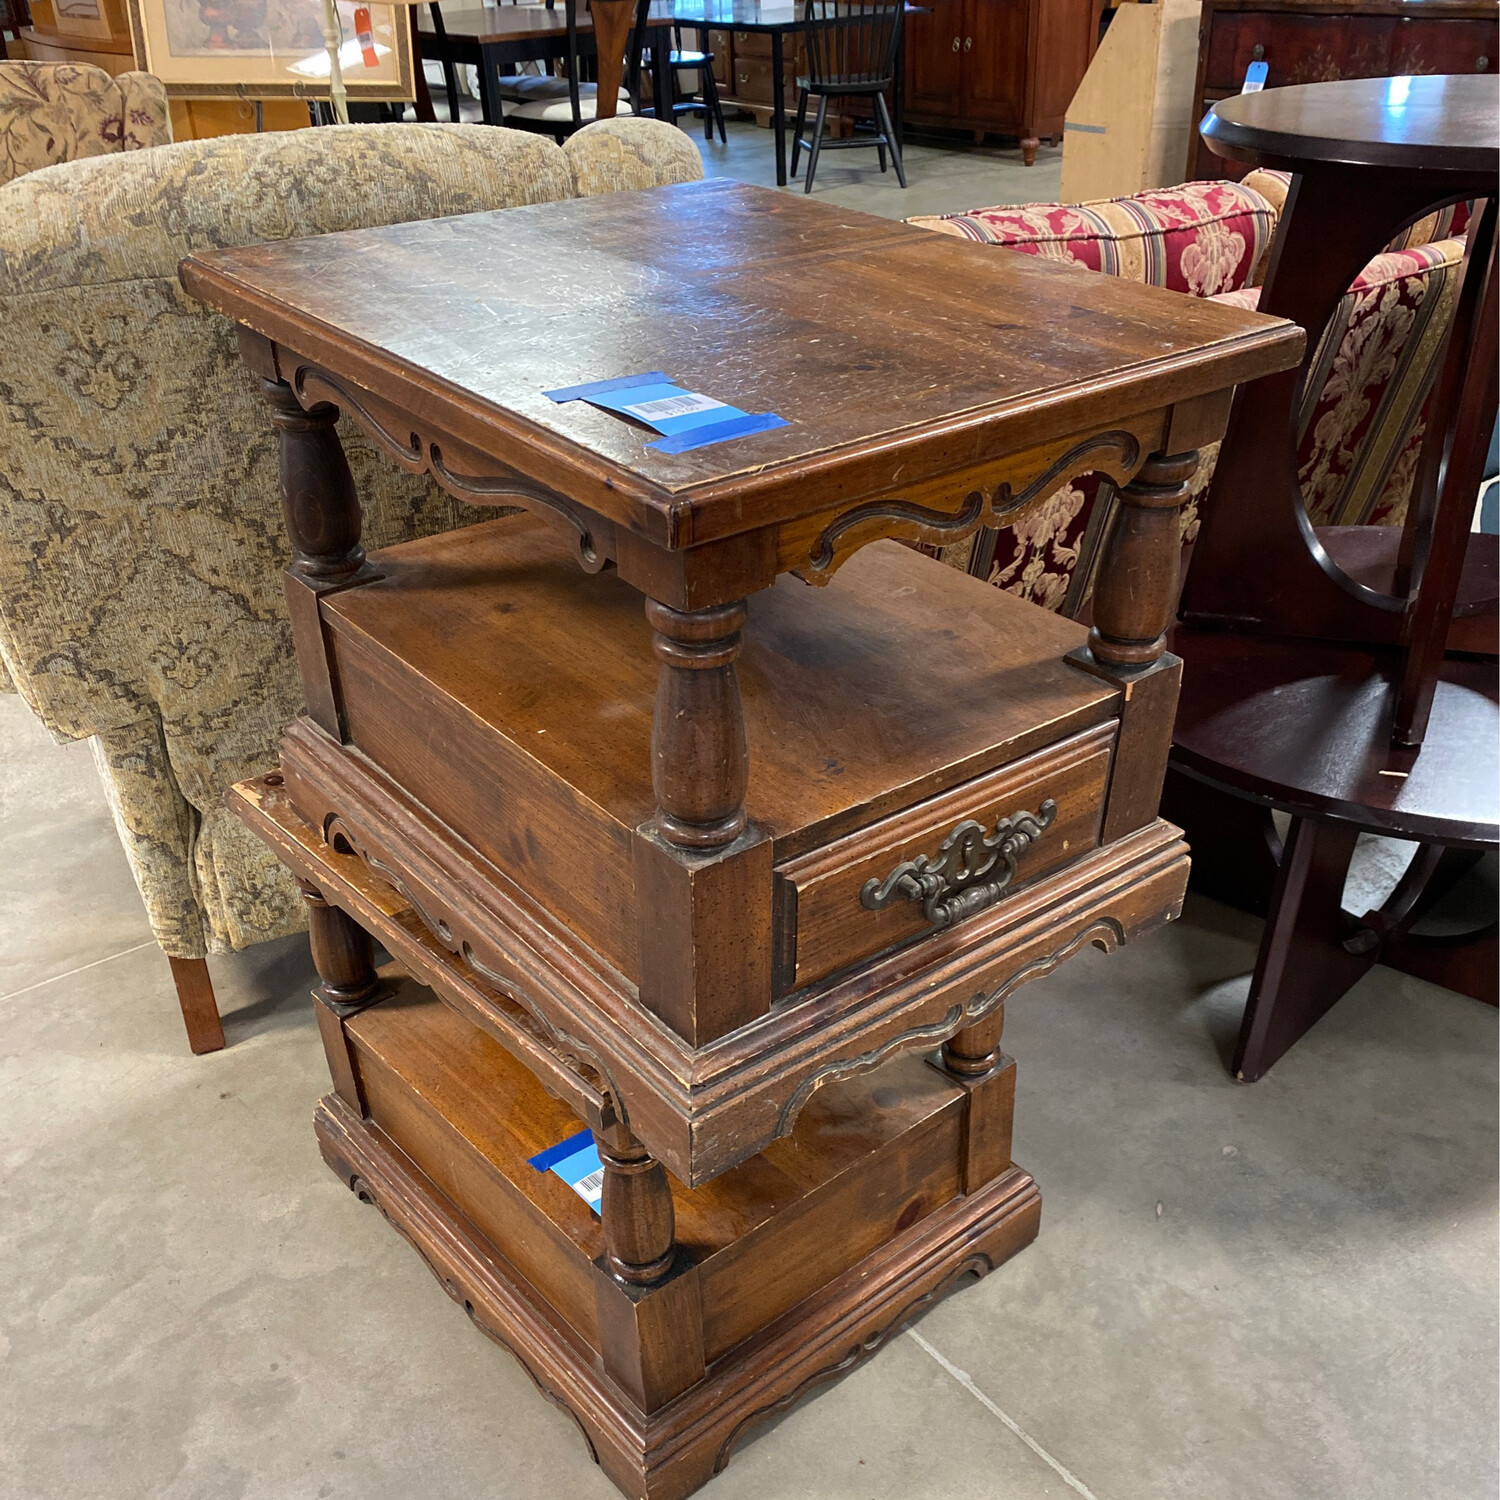 ORNATED SIDE TABLE